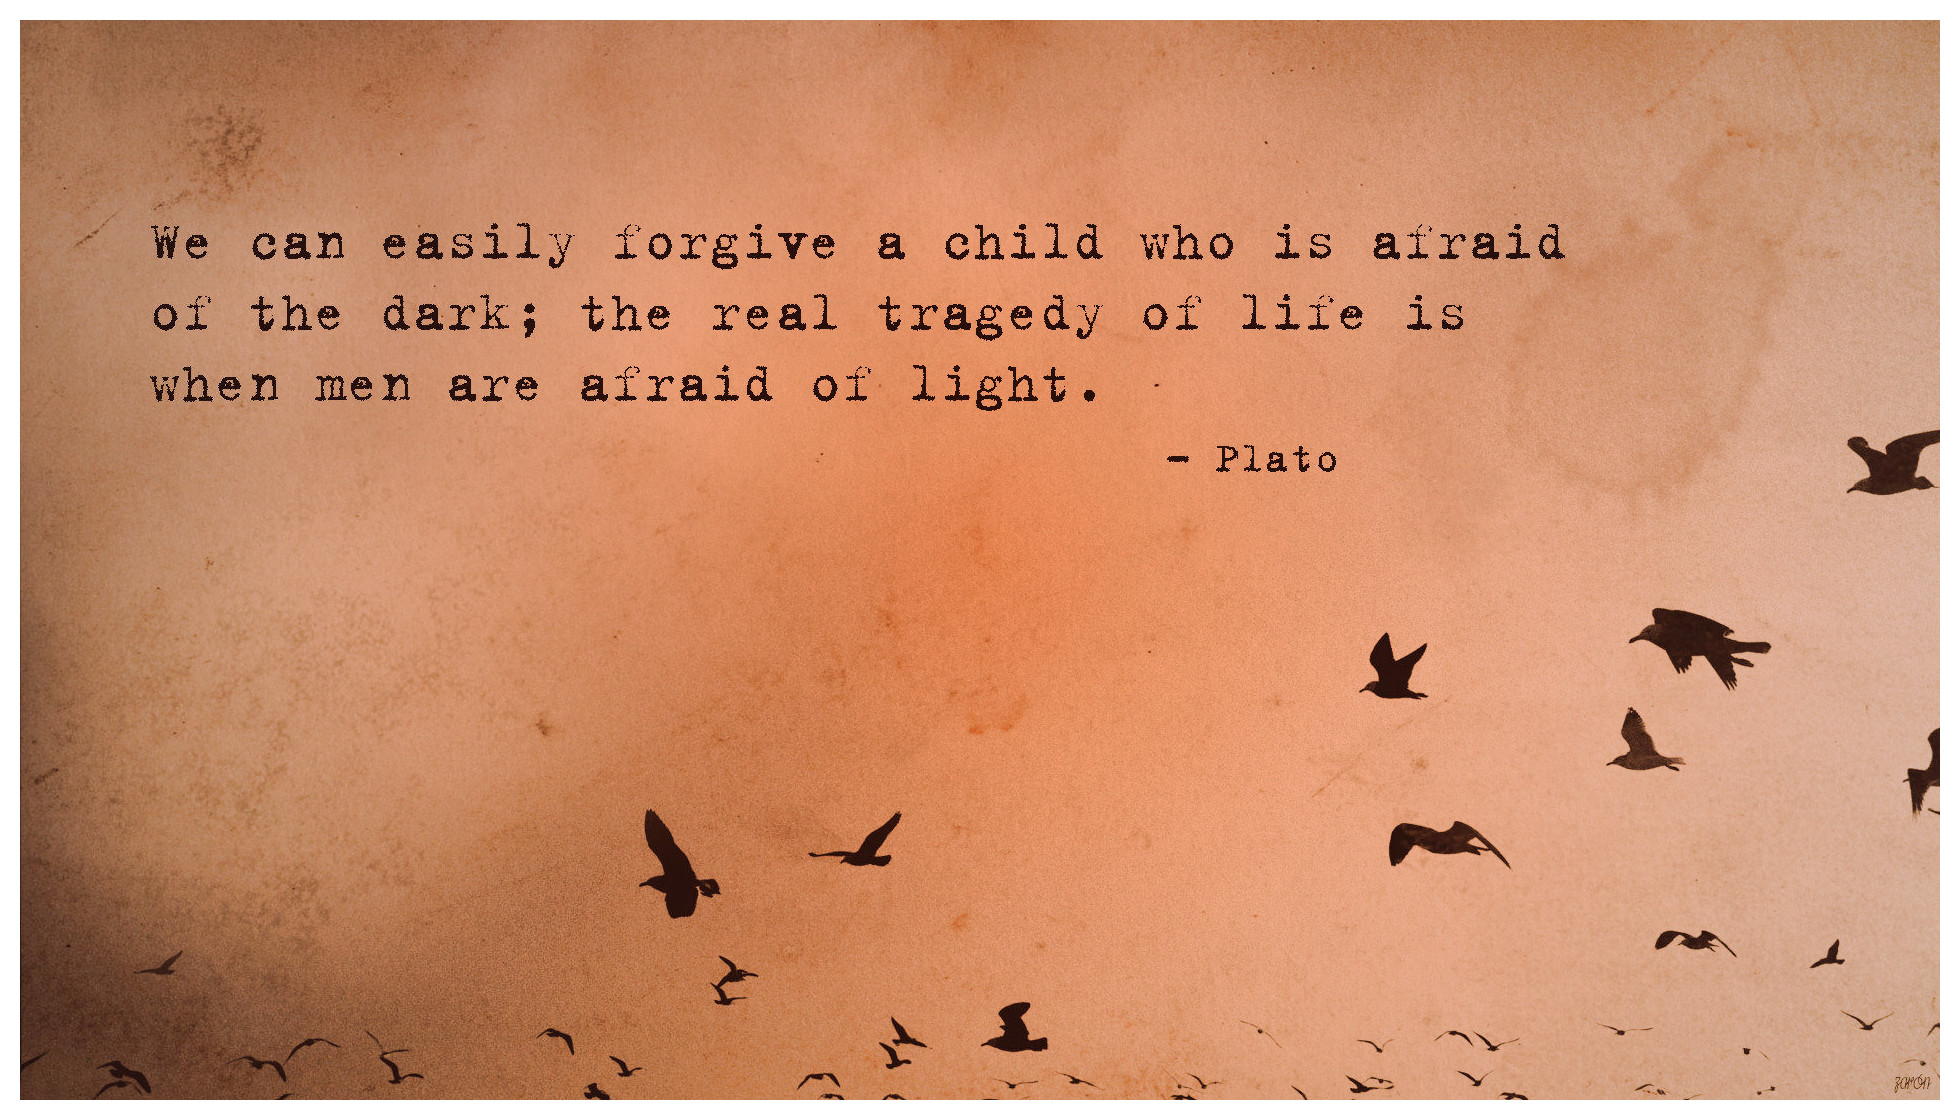 Plato Quote Tragedy Of Life Toaster Hd Wallpaper - Nine Inch Nails Birds - HD Wallpaper